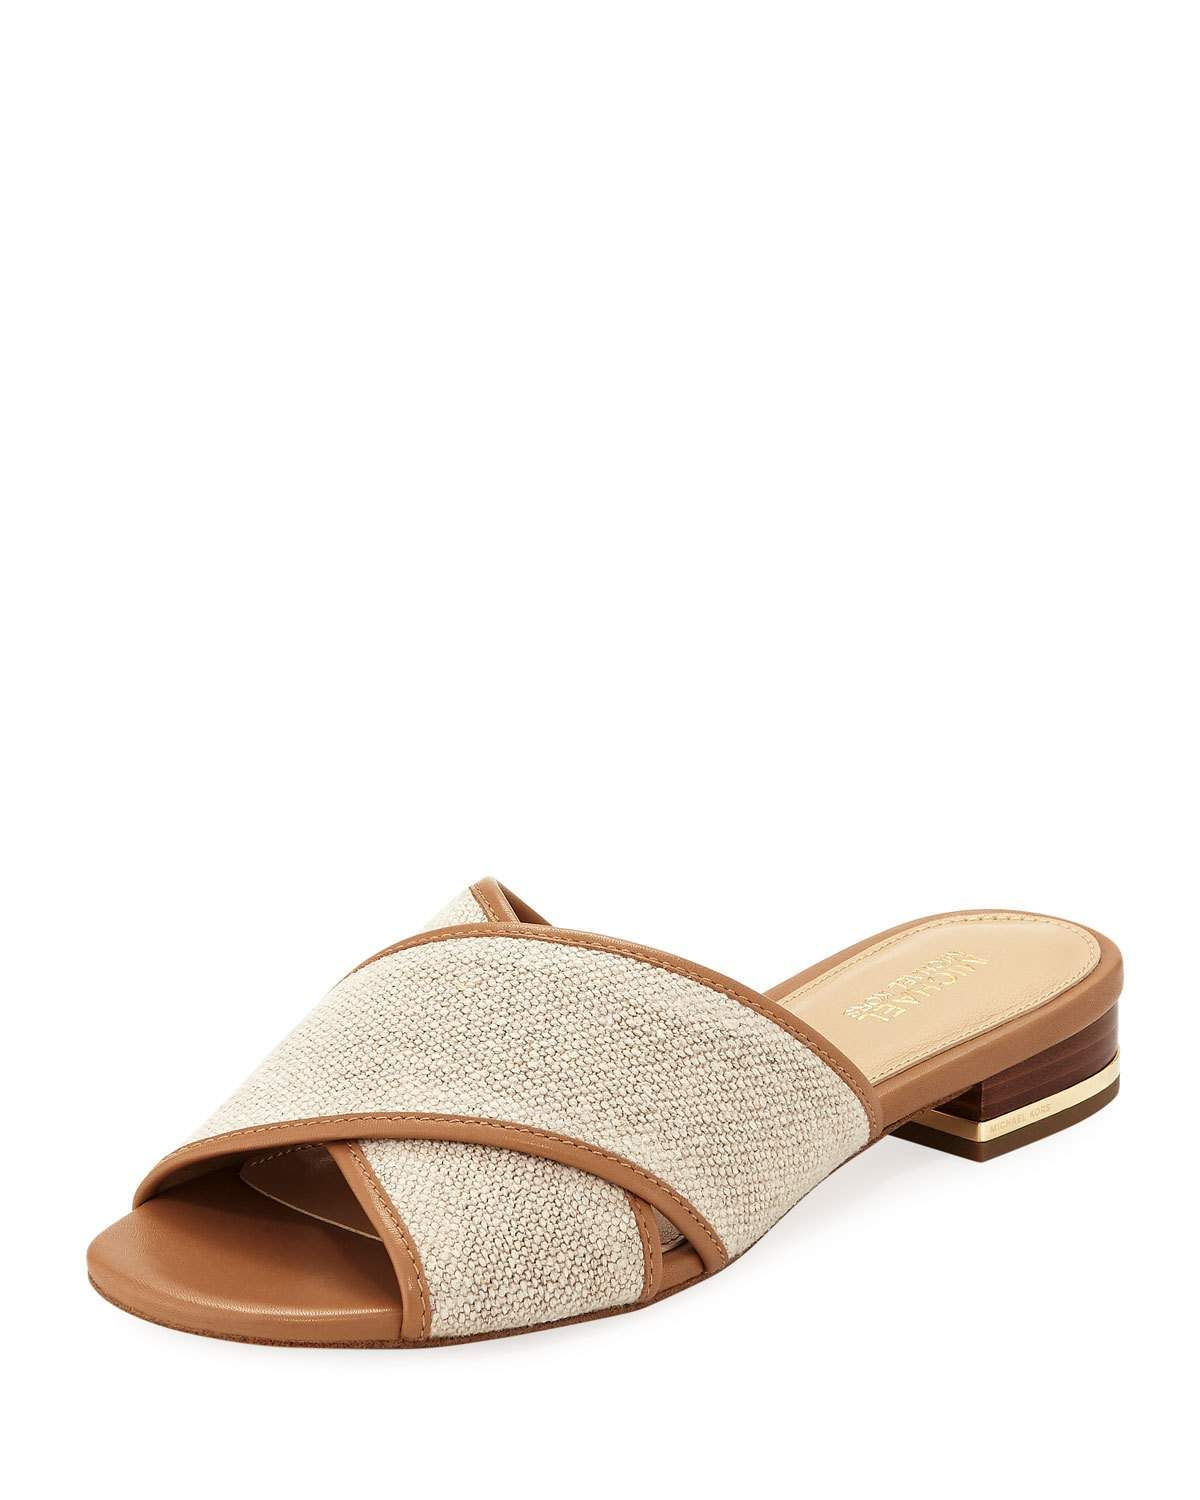 Shelly Leather Slide Sandals dXTpSN